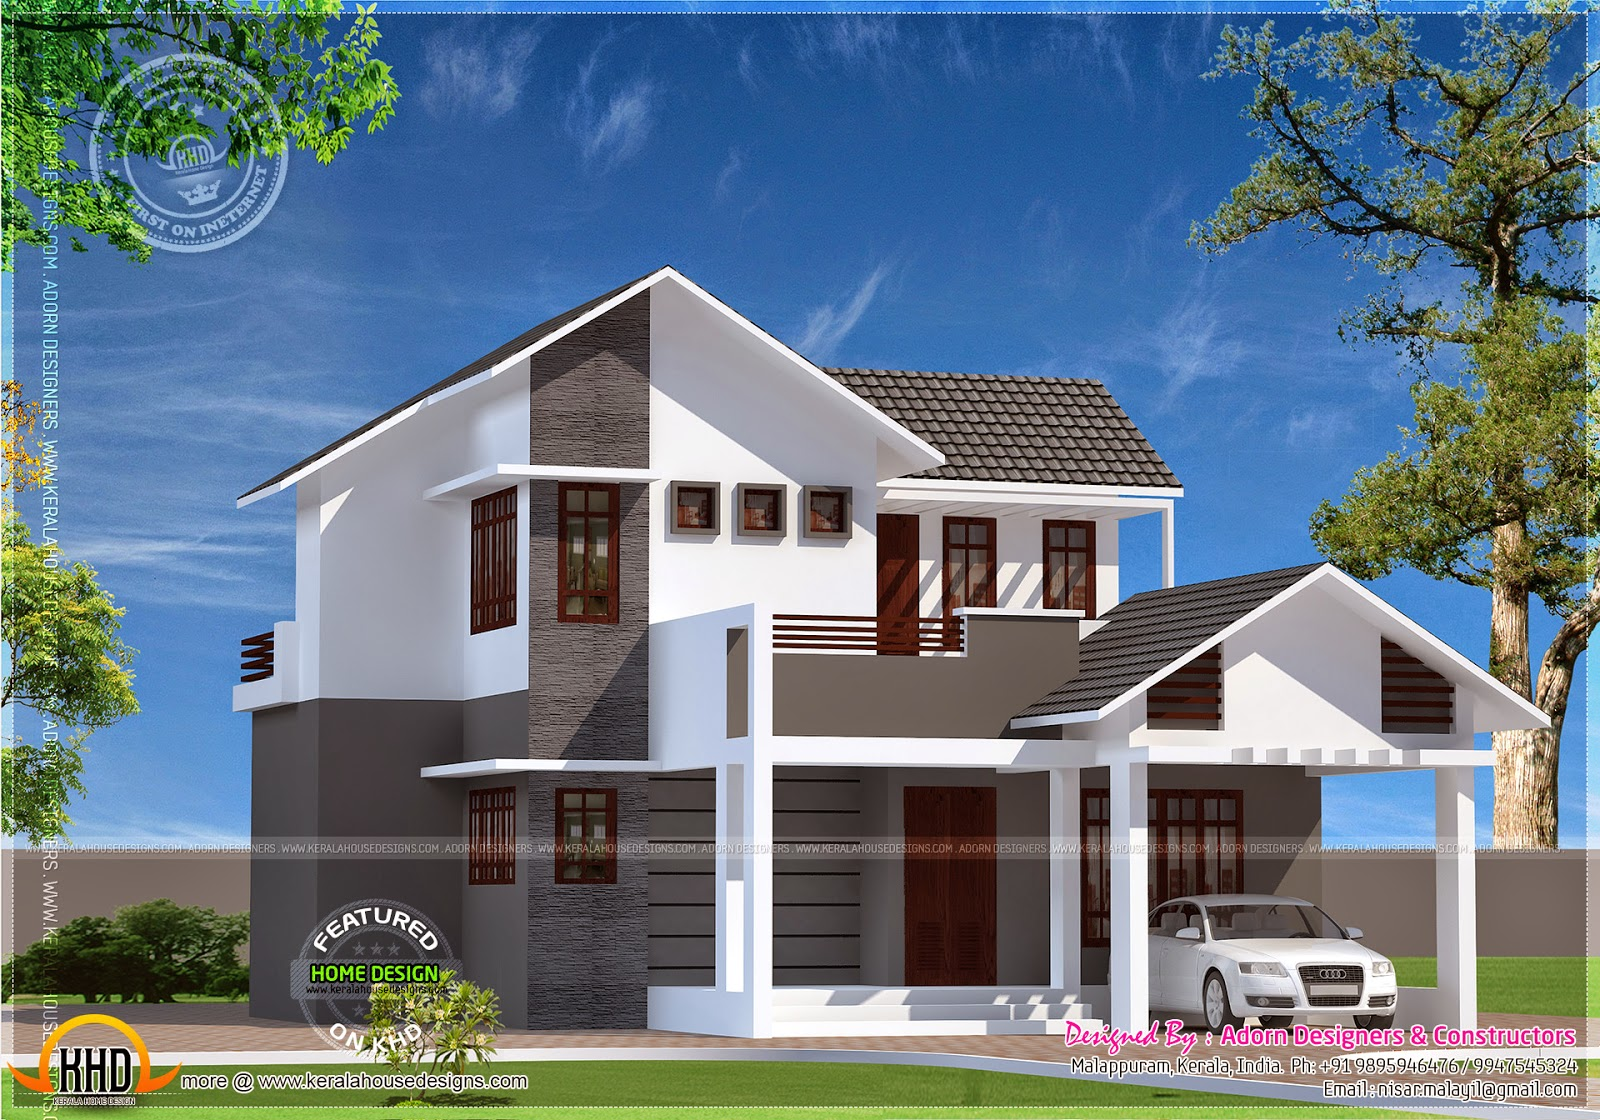 June 2014 kerala home design and floor plans for Sloped roof house plans in india